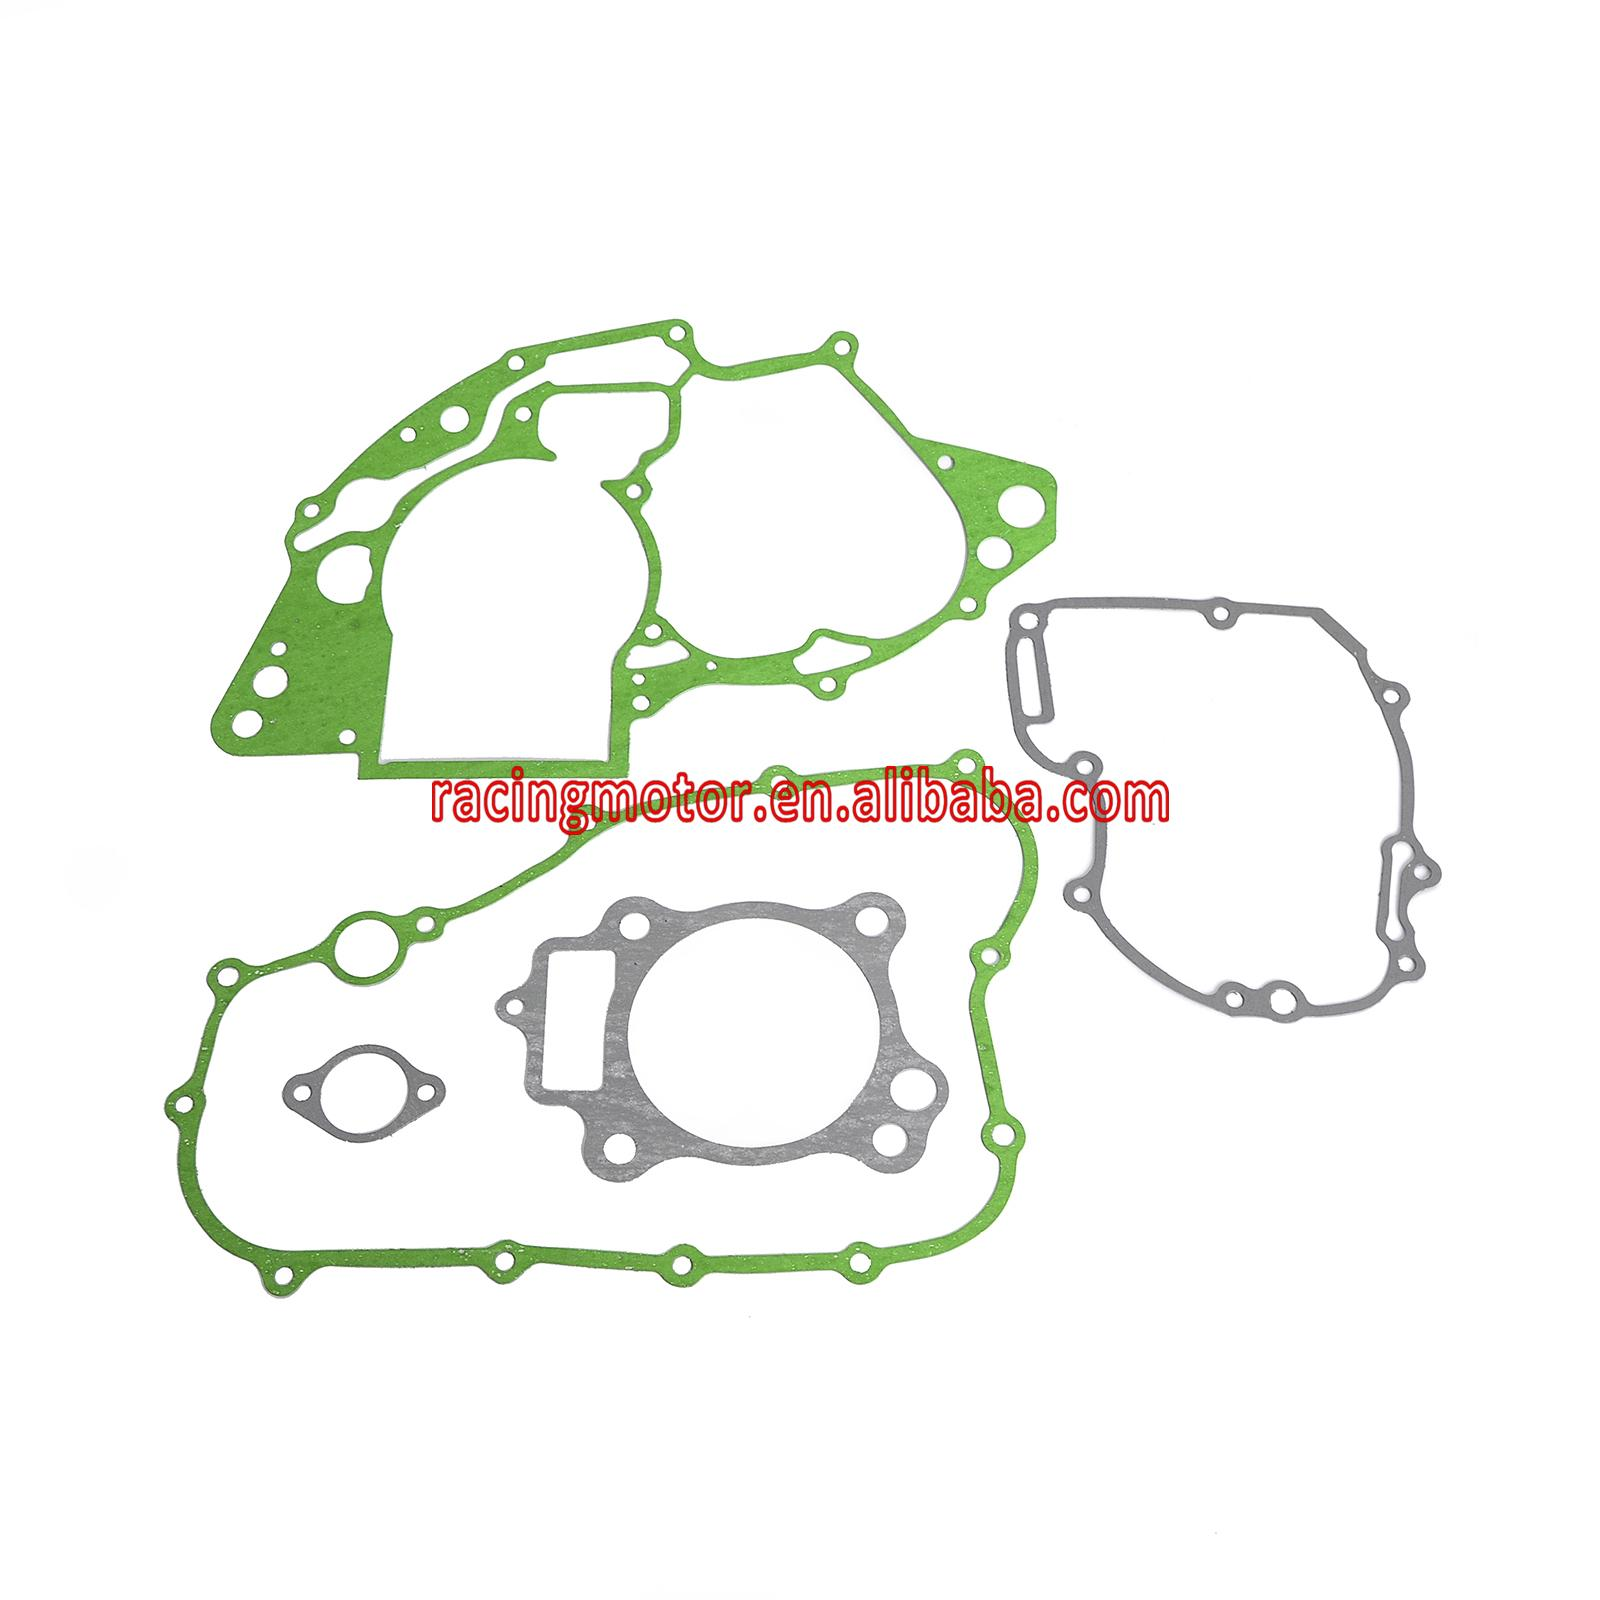 motorbike full engine cylinder gasket kits set for honda crf250 2004 2009 05 06 07 08 new in kickstarters parts from automobiles motorcycles on  [ 1600 x 1600 Pixel ]